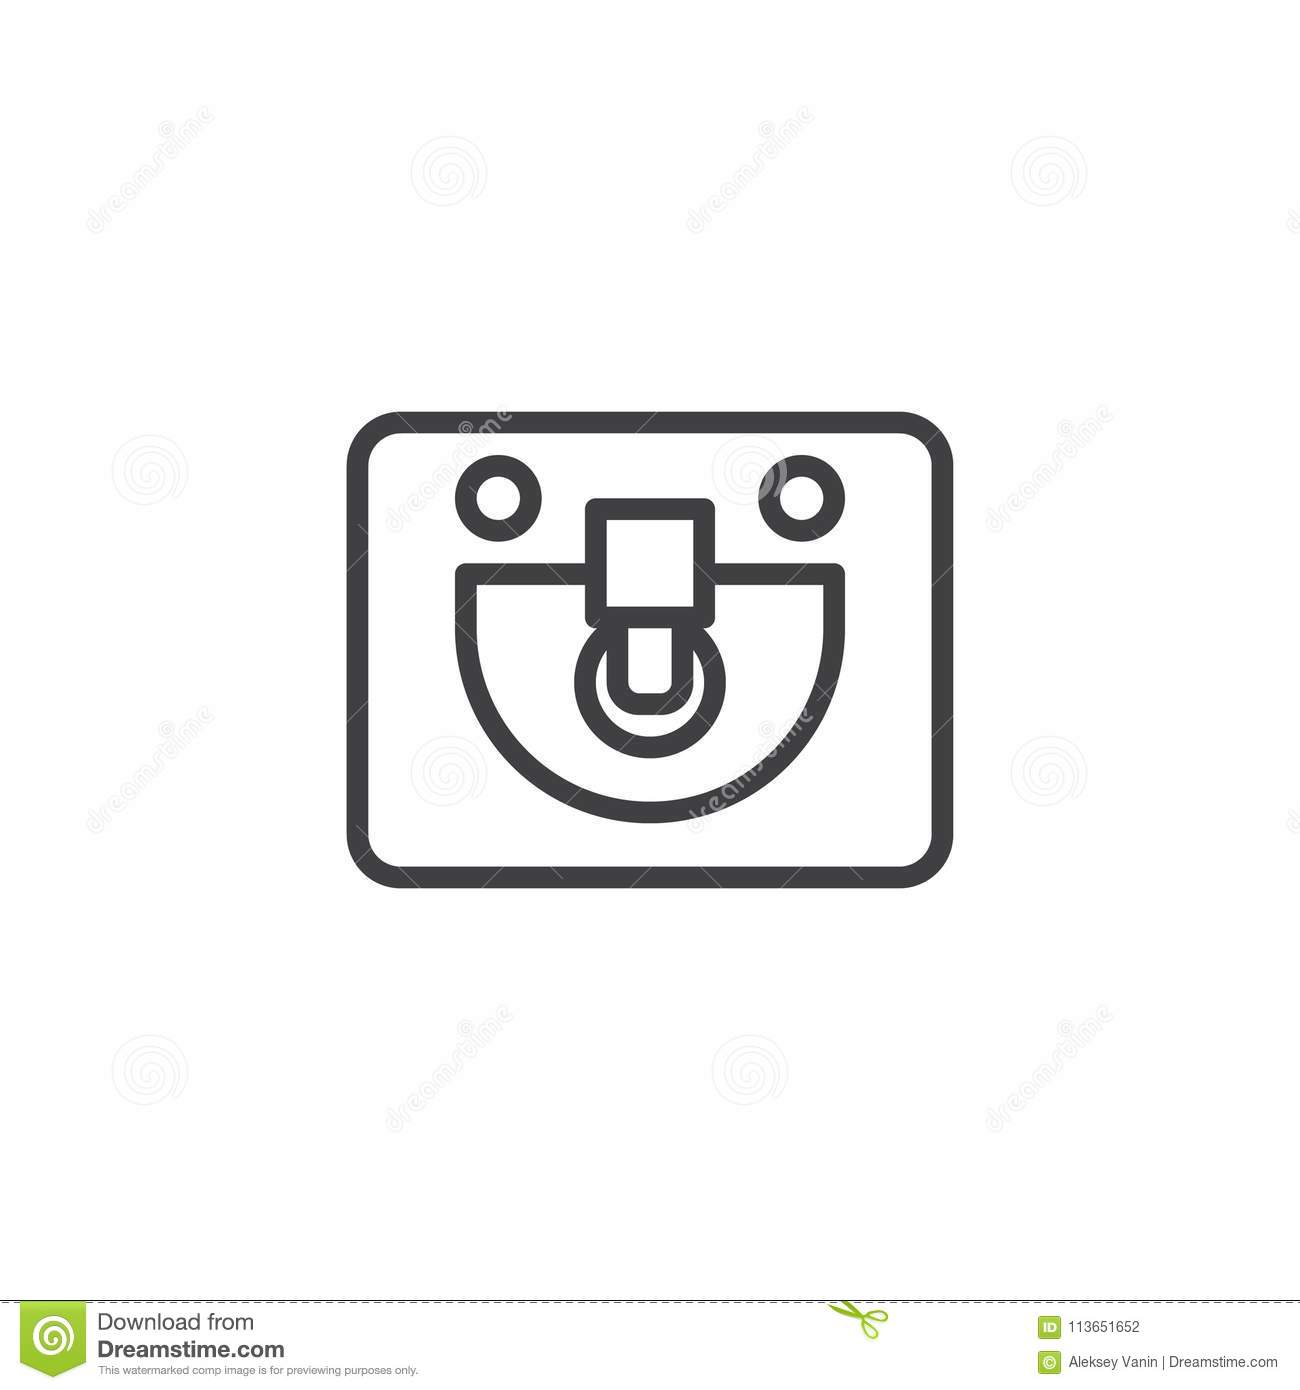 sink top view outline icon stock vector illustration of bowl 113651652 https www dreamstime com sink top view outline icon linear style sign mobile concept web design washbasin simple line vector icon symbol logo image113651652